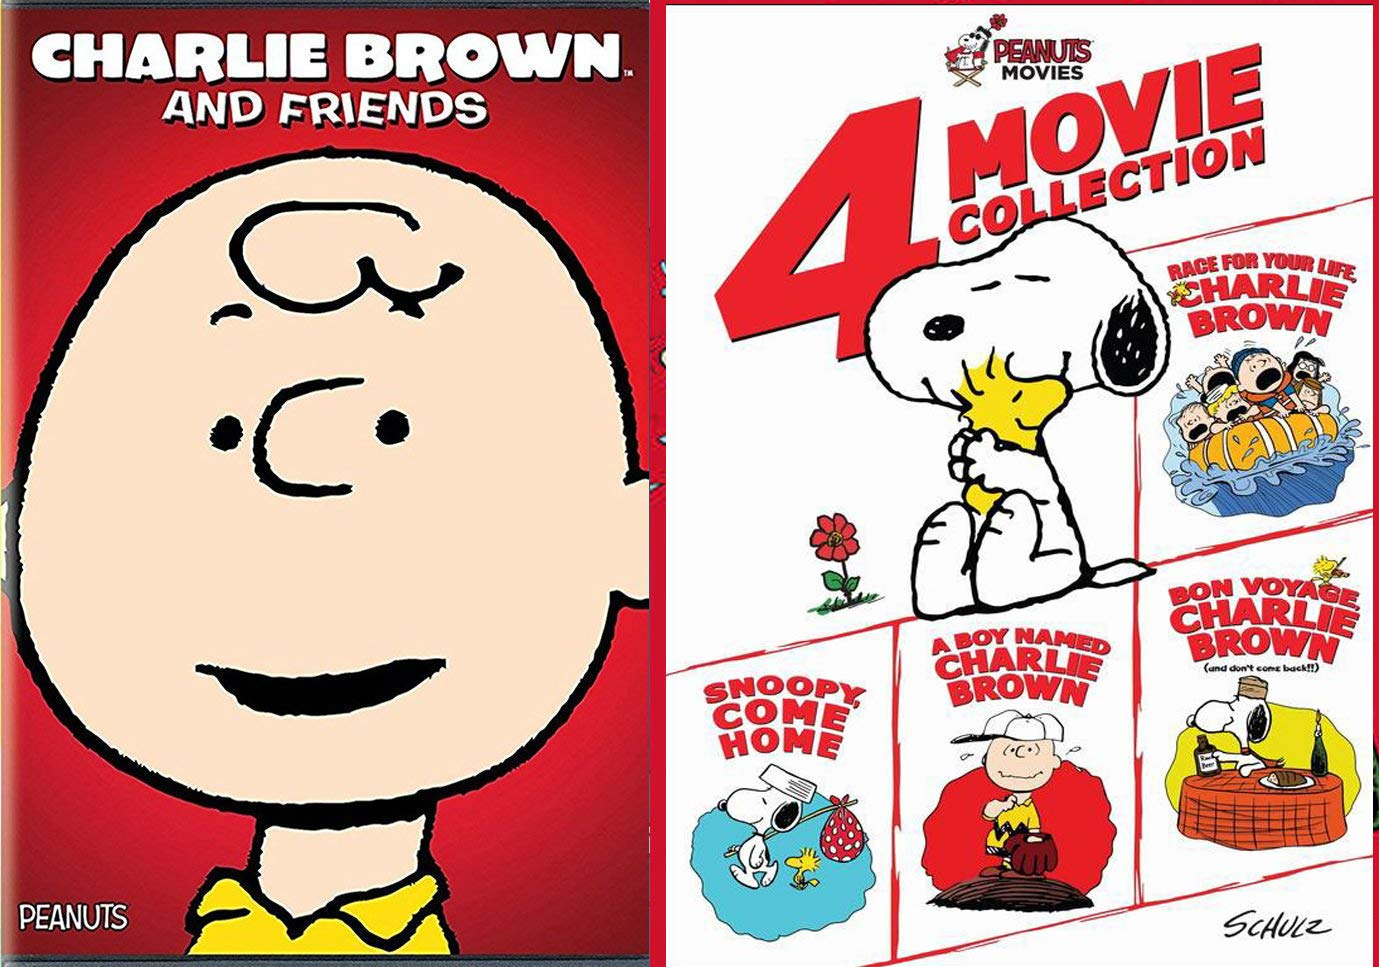 Big Hearted Dreams Kids Adventure Peanuts Family Race for your life & Snoopy Bon Voyage Home DVD & Happiness Charlie Brown Boy Feature & Gang Bonus Snoopy's Snippets movie Pack